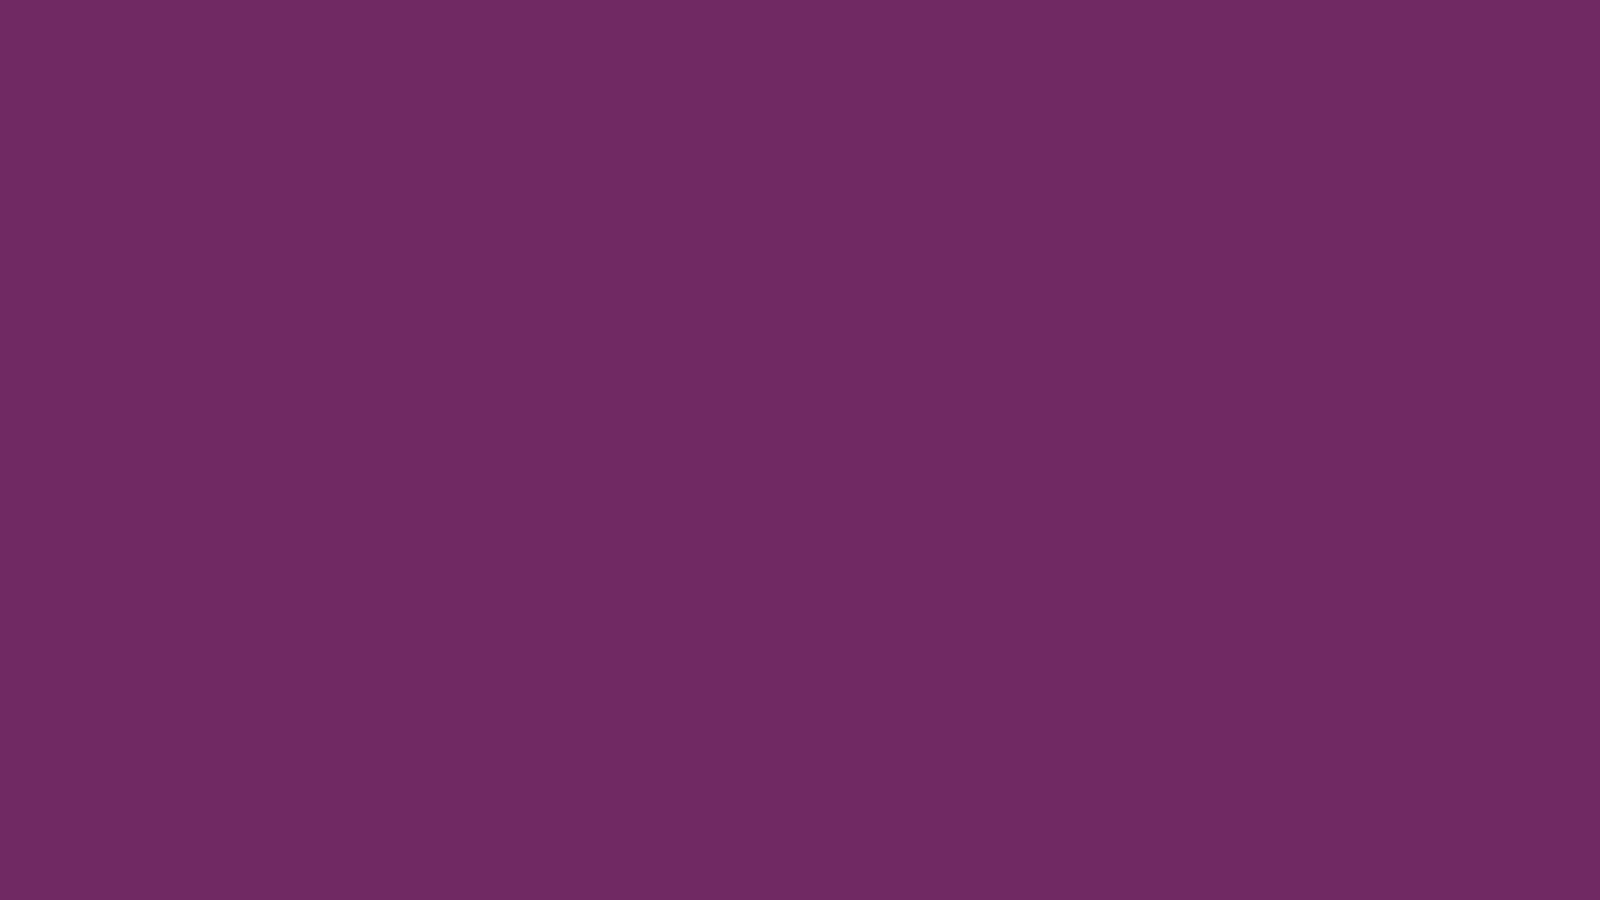 1600x900 Byzantium Solid Color Background